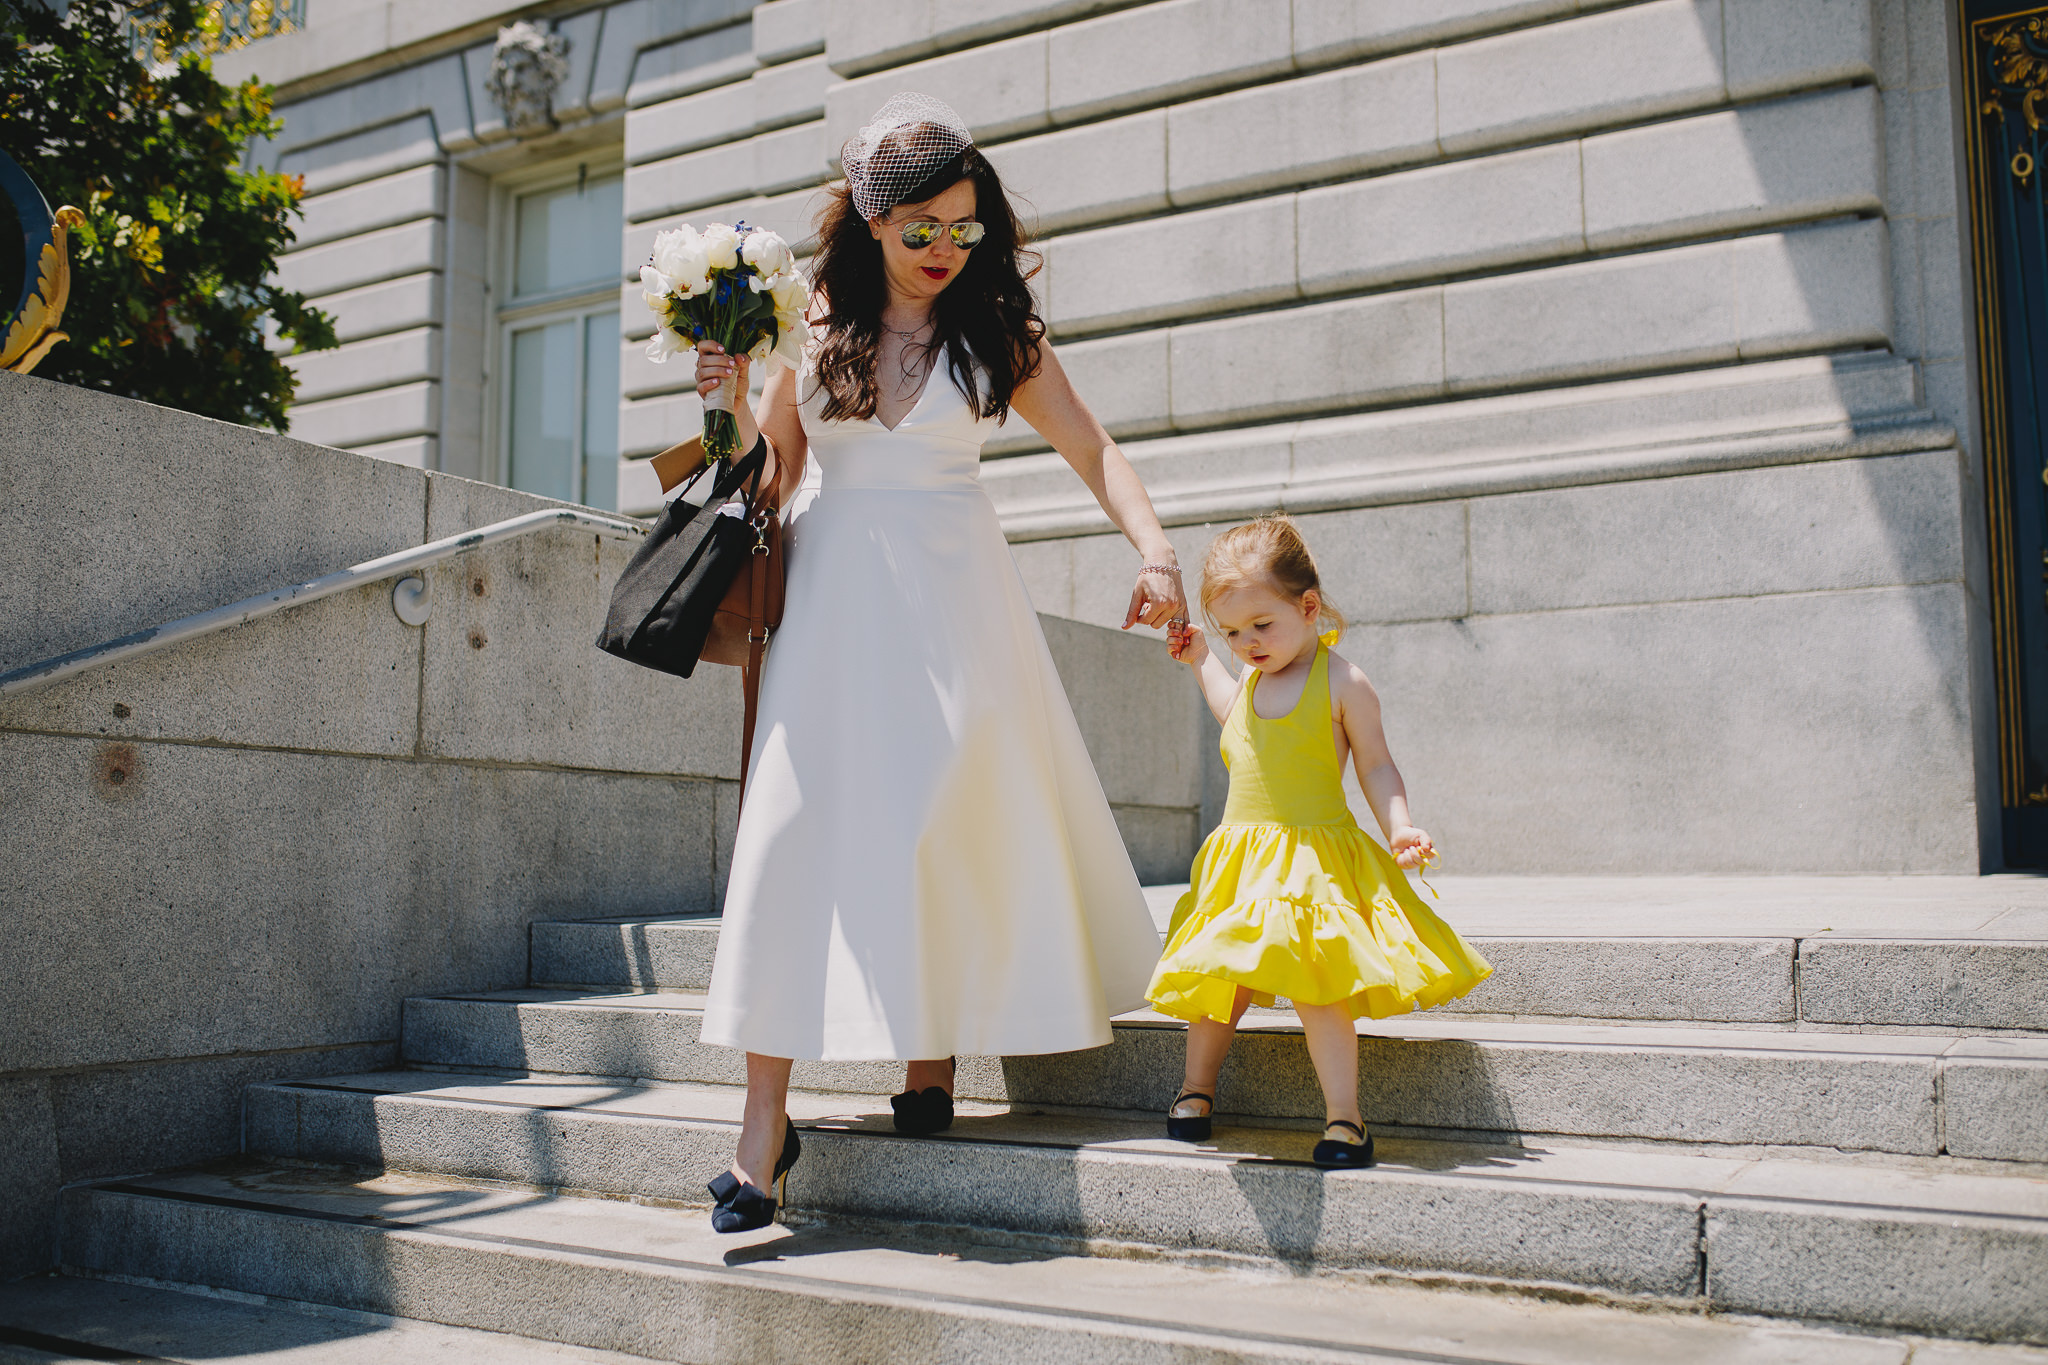 Archer Inspired Photography SF City Hall Elopement Wedding Lifestyle Documentary Affordable Photographer-253.jpg